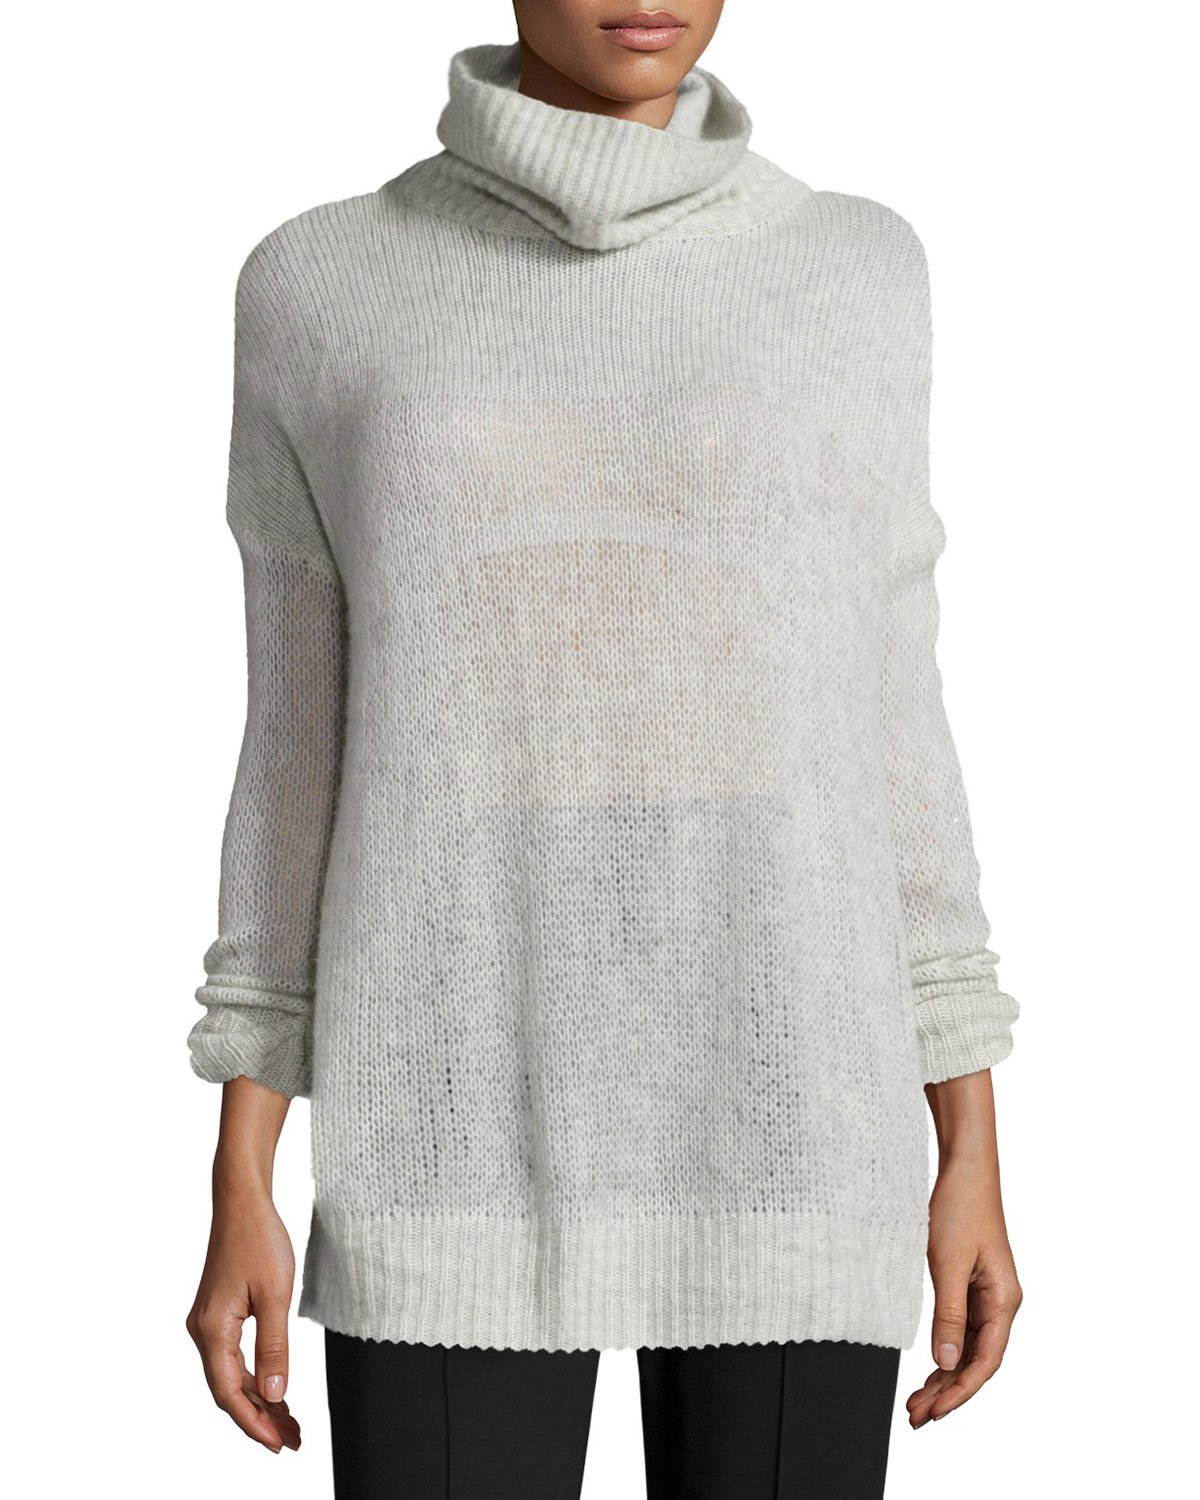 Womens grey cashmere sweater for and spencer sale